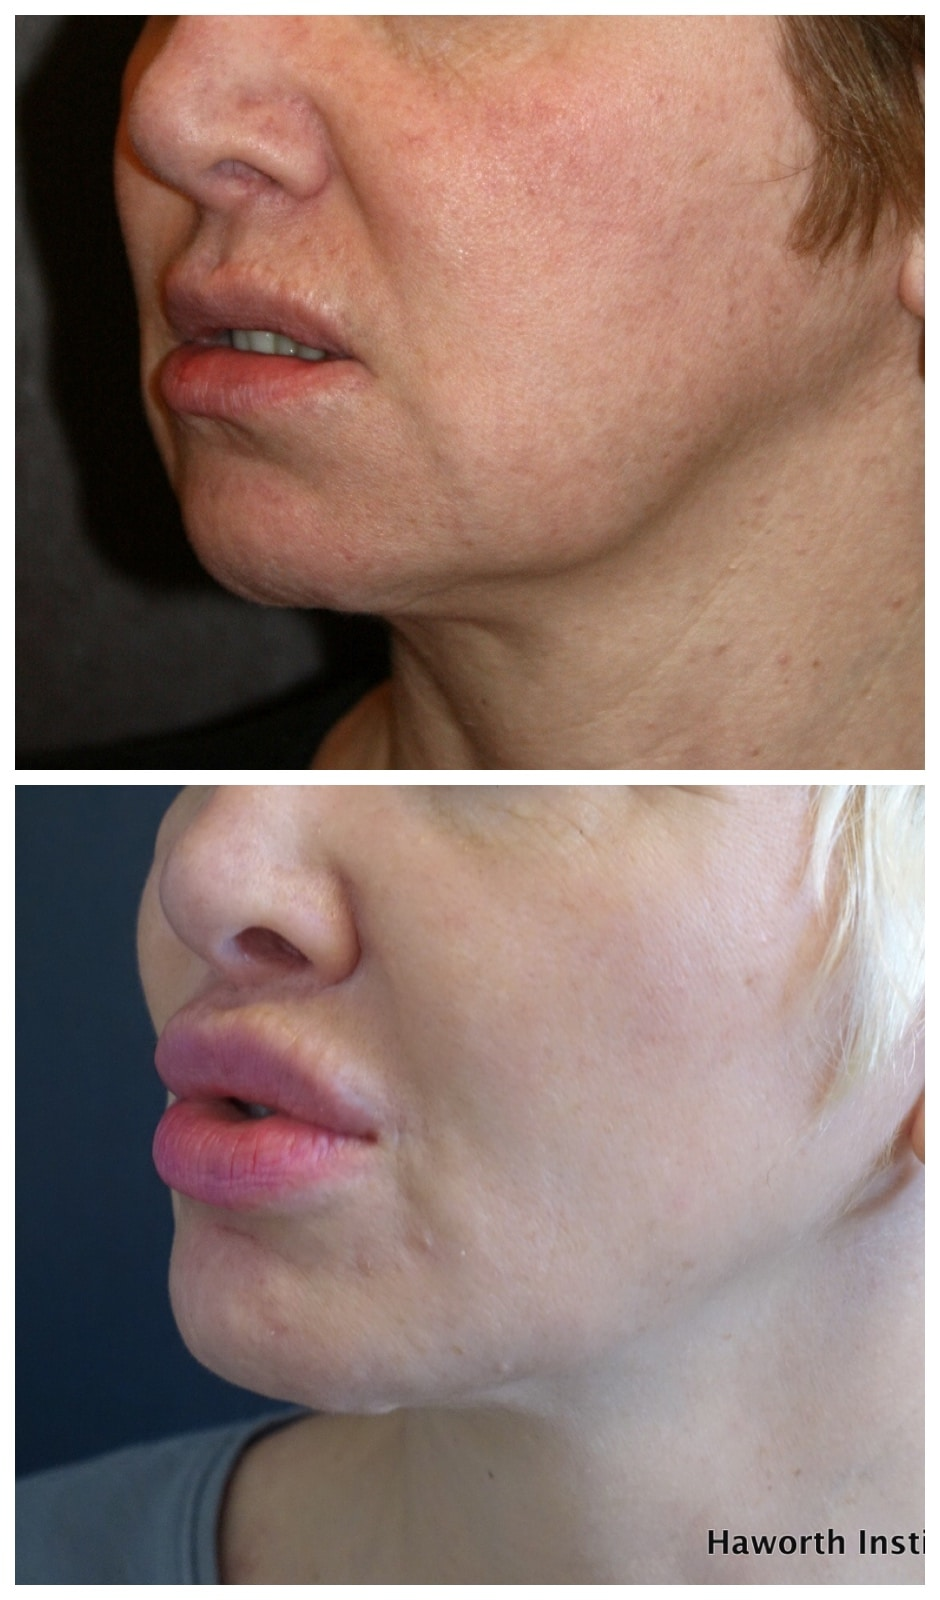 Dramatic perioral rejuvenation including improvement of the jowl and chin utilizing a combination micro liposculpture and fat transfer. Note the smoother jawline and submental (chin) region all performed with delicate no scar facial surgery without a face or neck lift.